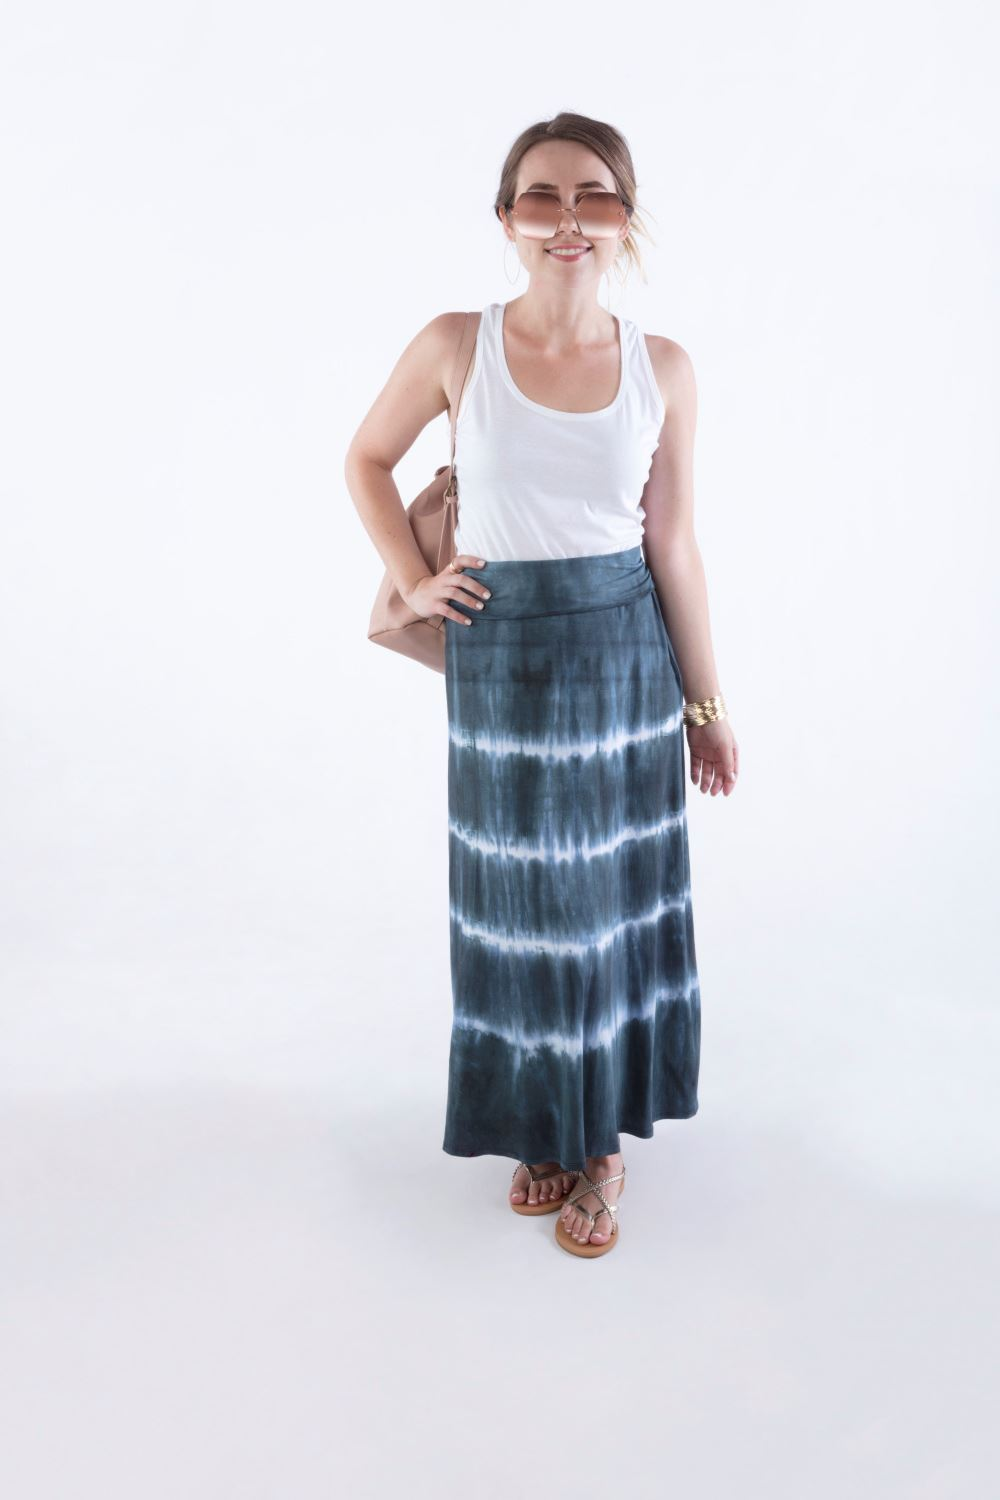 Hilary Duff Inspired Tie Dye Maxi Skirt